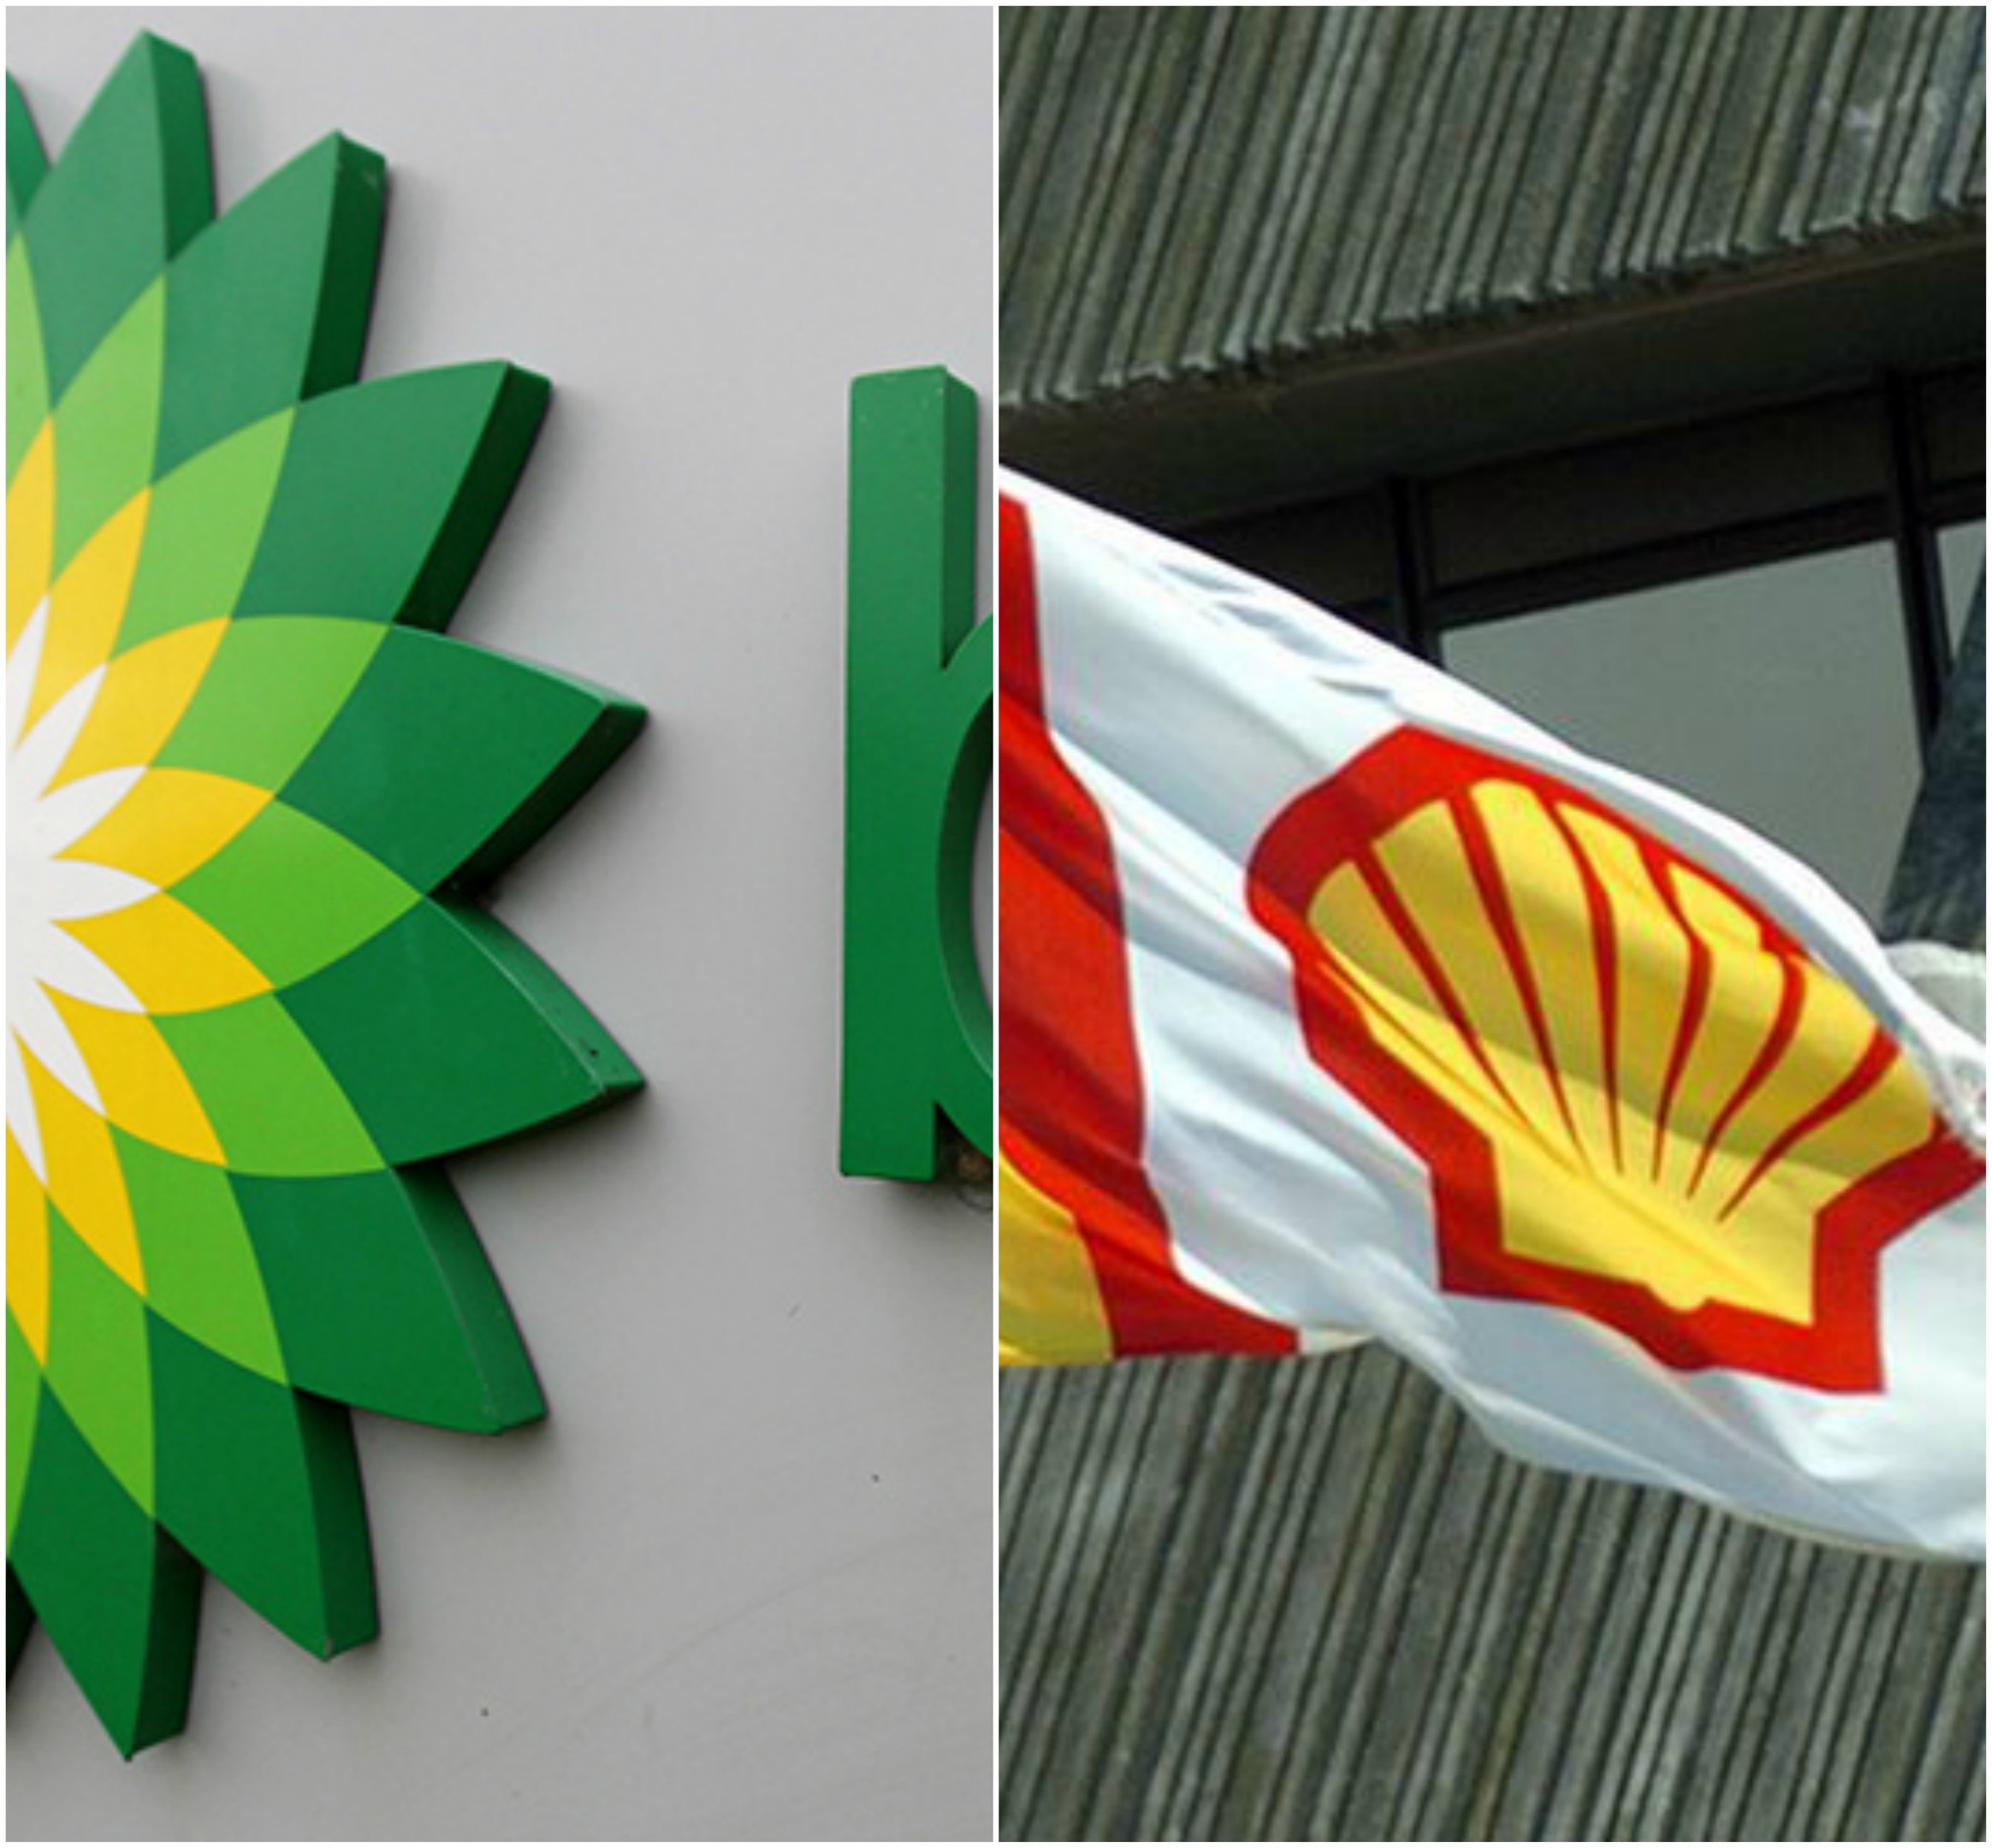 BP and Shell